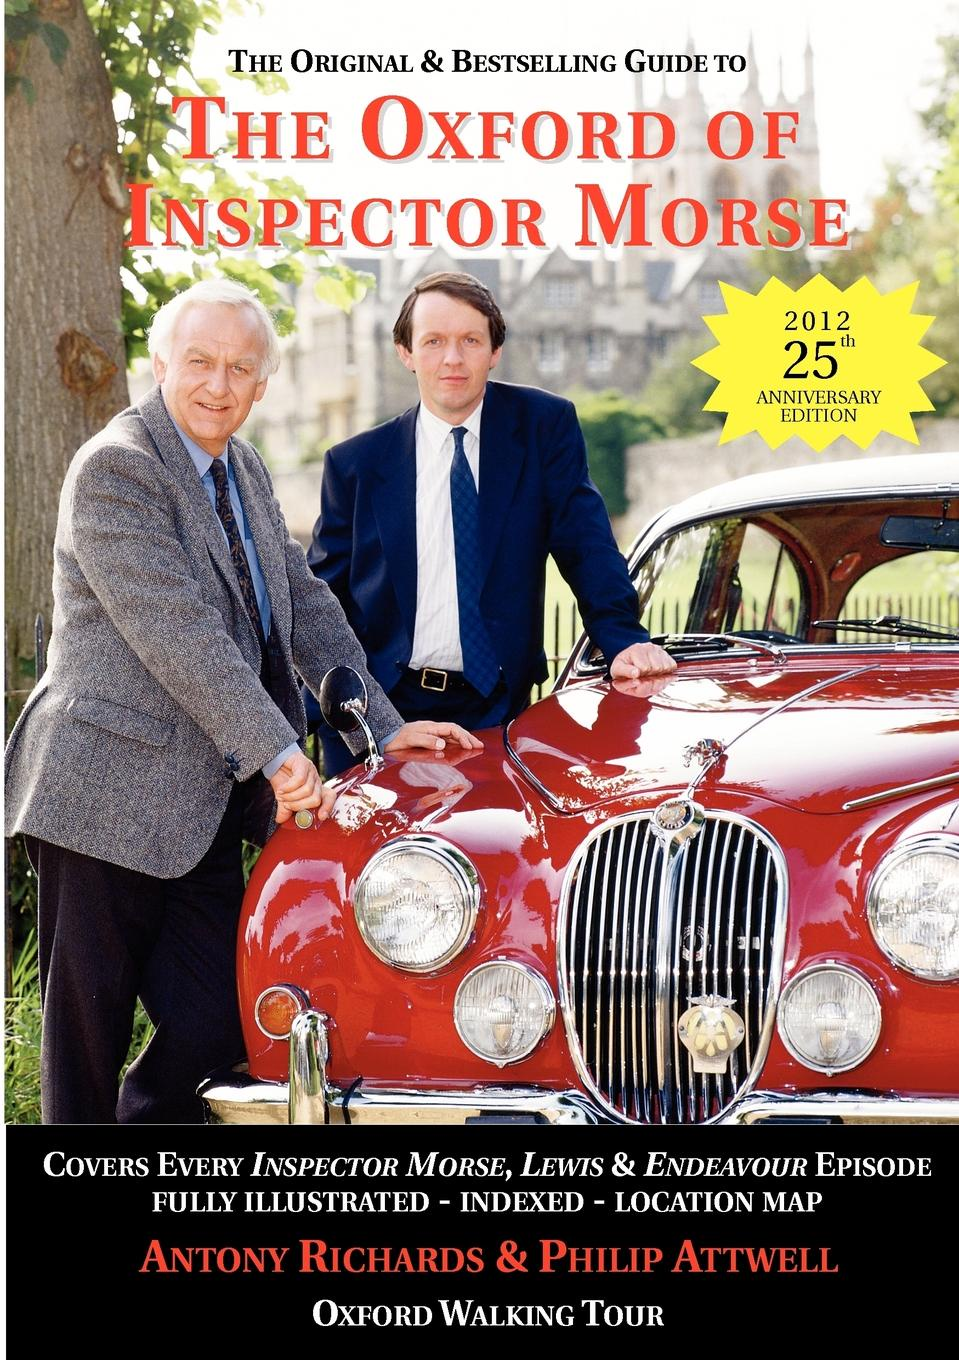 Antony J Richards, Philip Attwell The Oxford of Inspector Morse morse taper holder bt40 mtb2 120